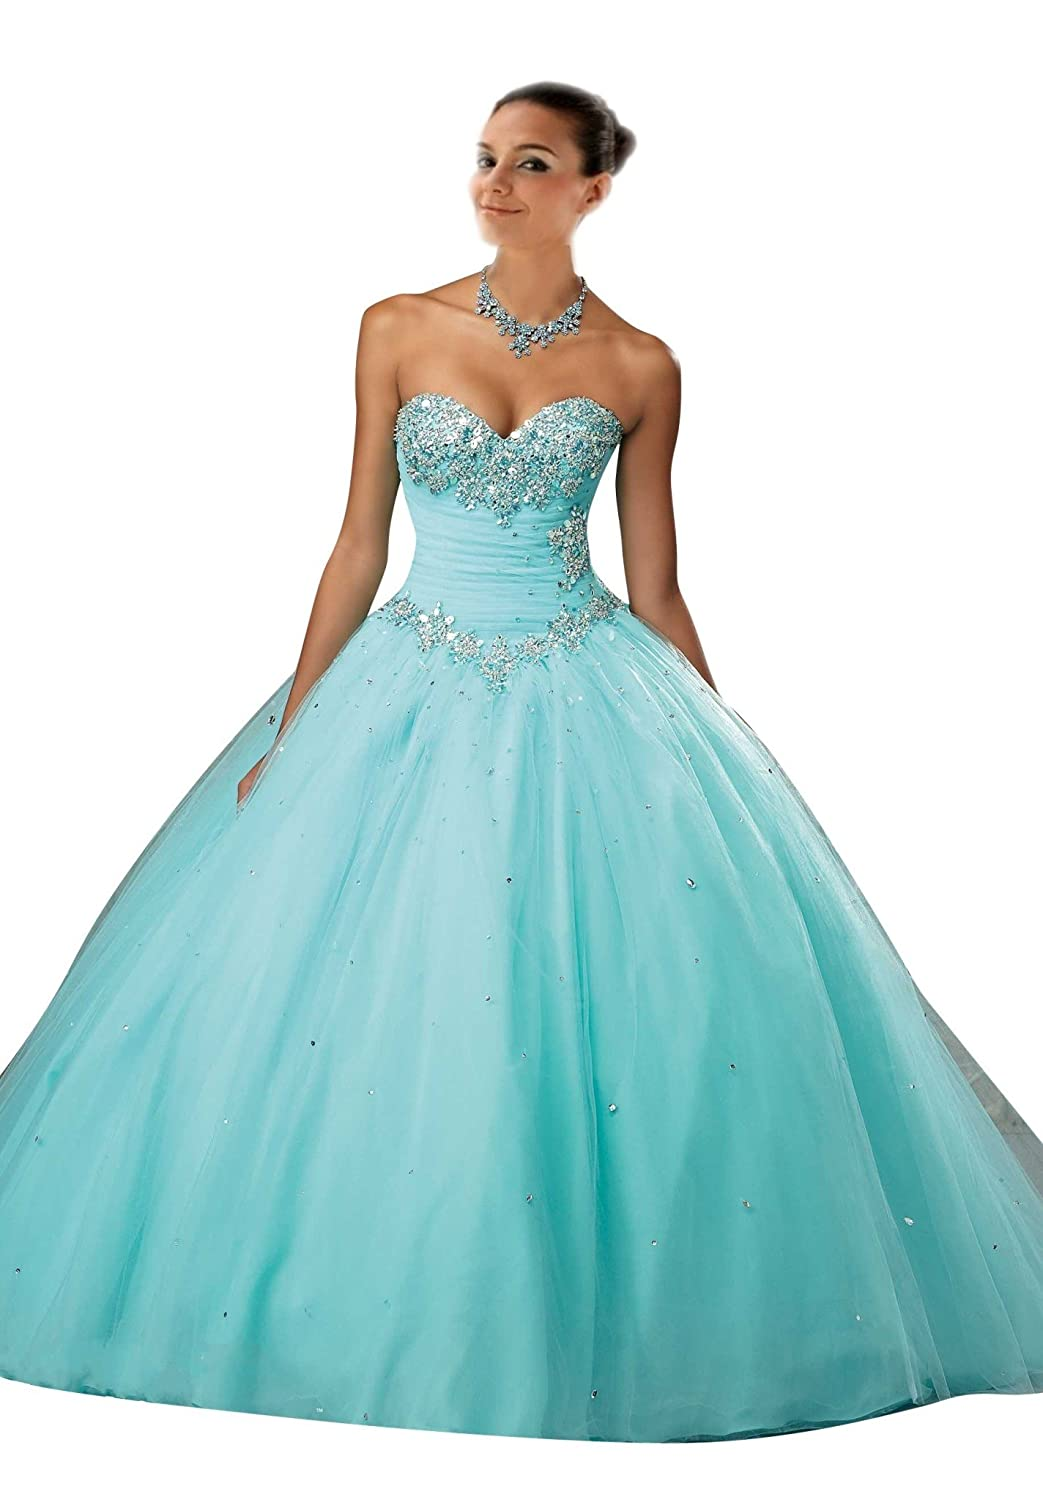 Mollybridal Crystal Sweetheart Ball Gowns Quinceanera Gown Dresses ...